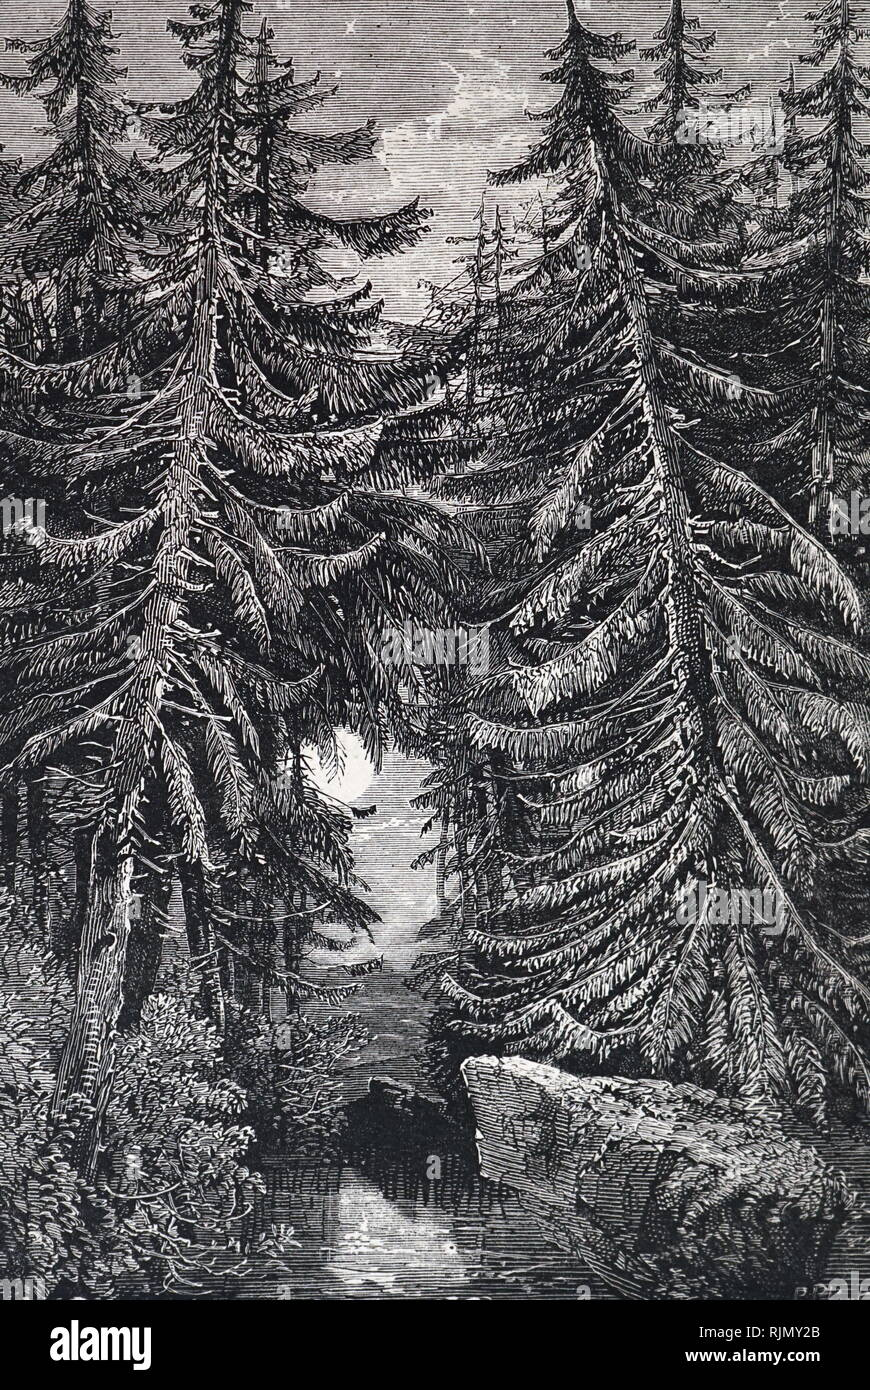 An engraving depicting Fir trees. An engraving by Richard Principal Leitch, 1874 - Stock Image